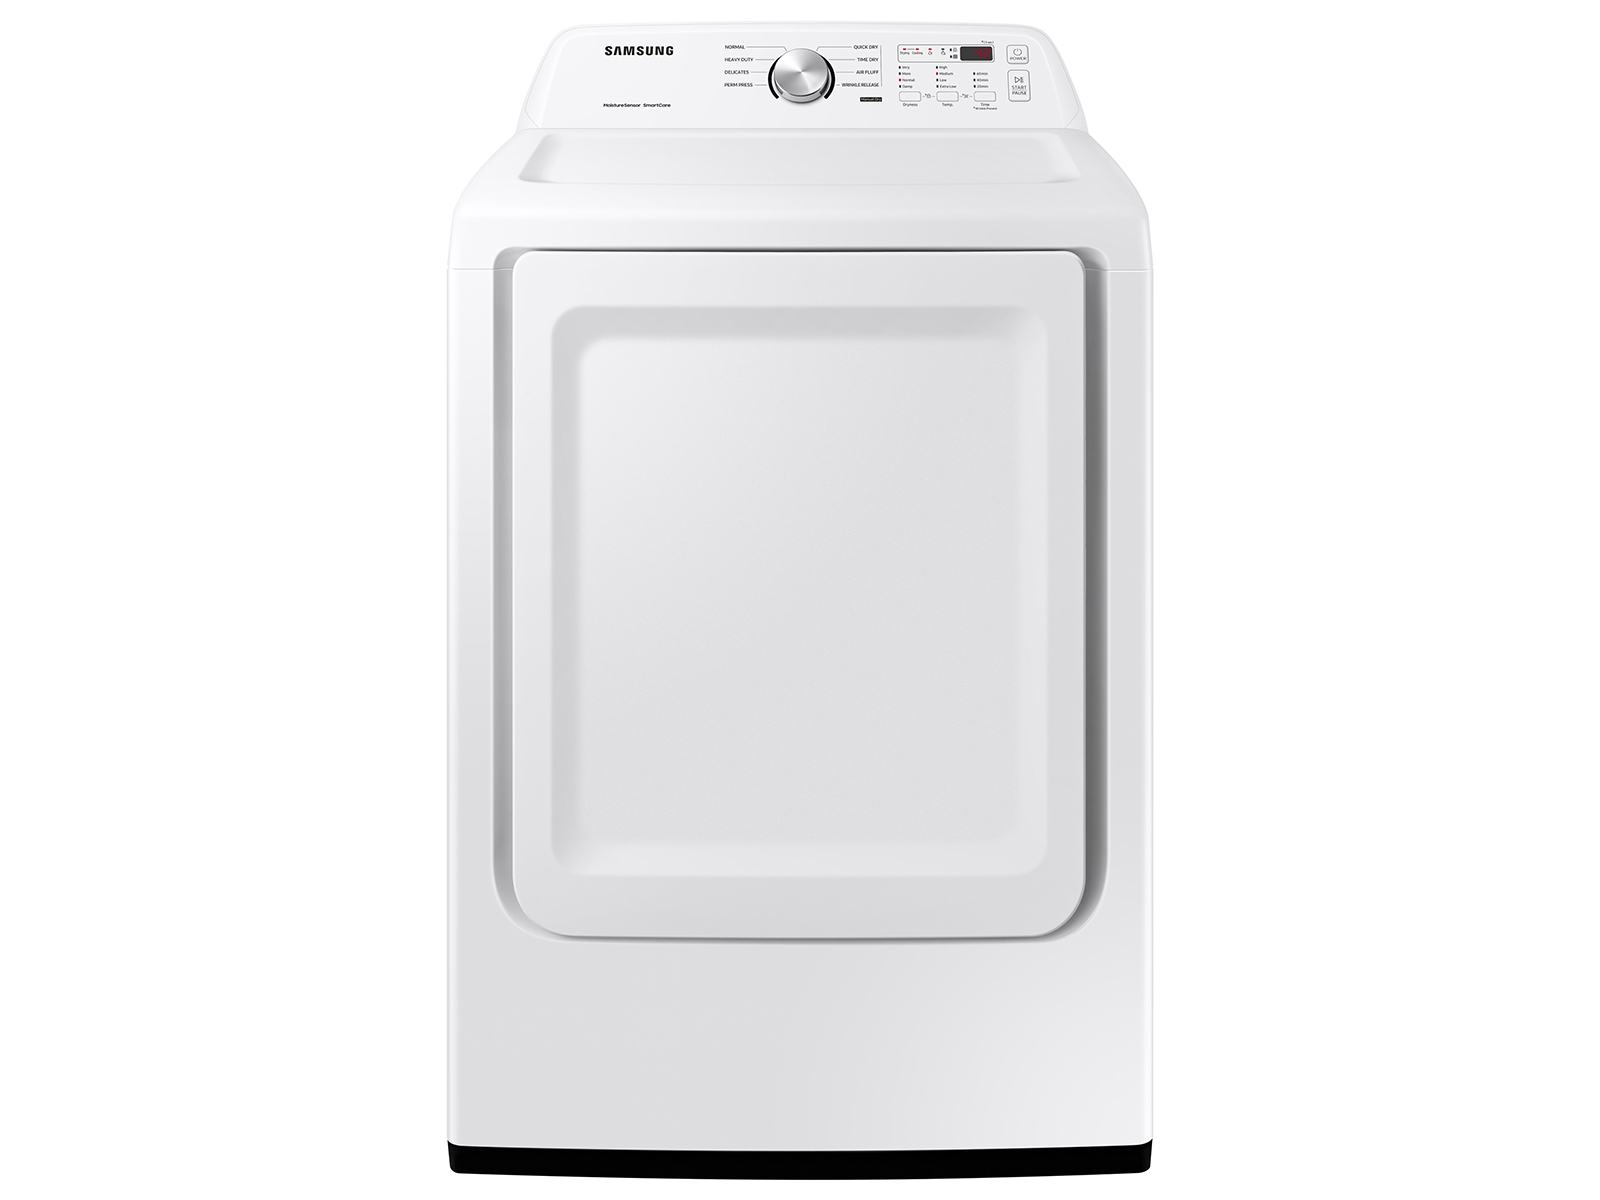 Samsung 7.2 cu. ft. Electric Dryer with Sensor Dry in White